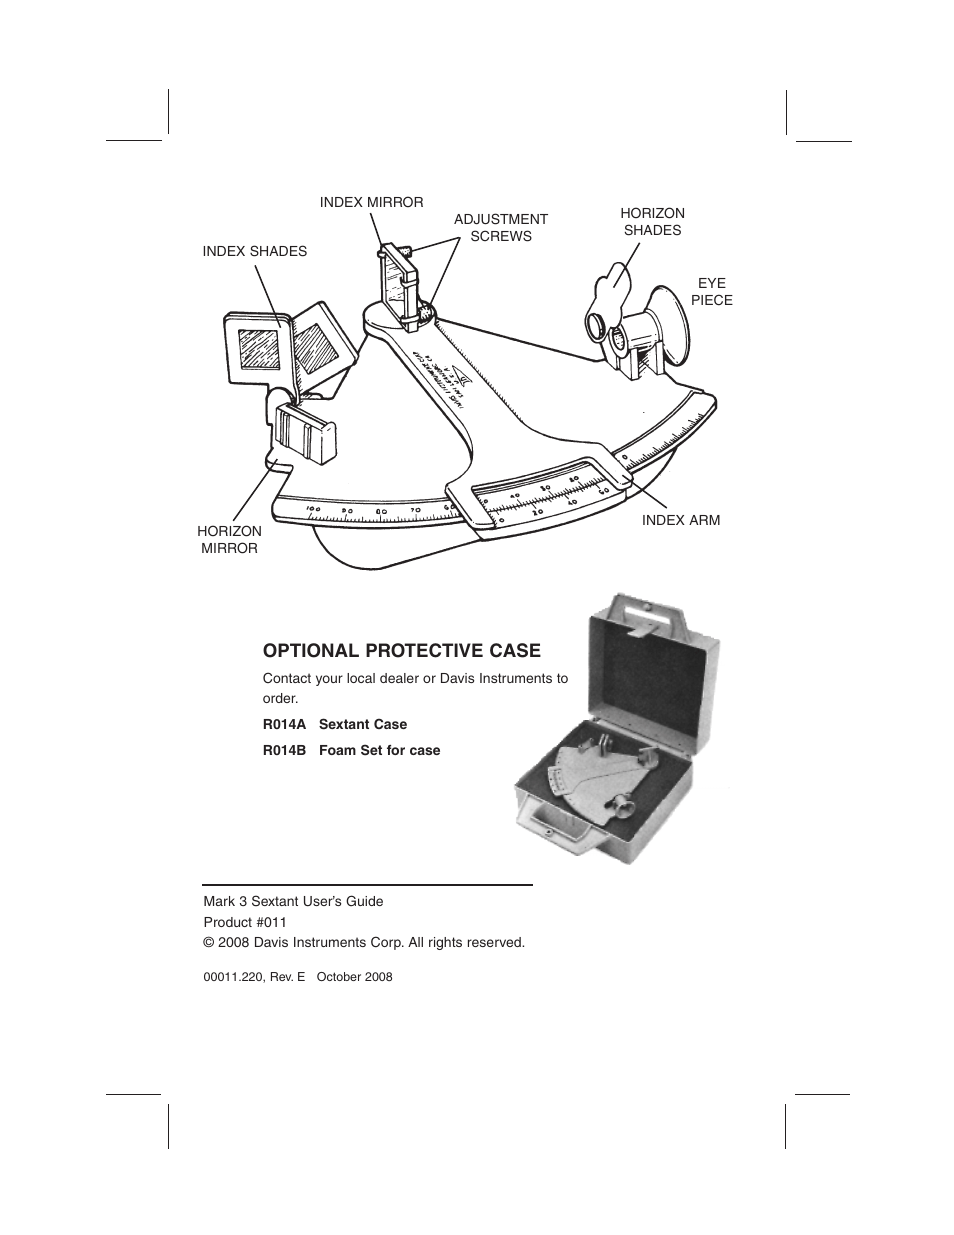 hight resolution of optional protective case davis mark 3 sextant user manual page 2 20